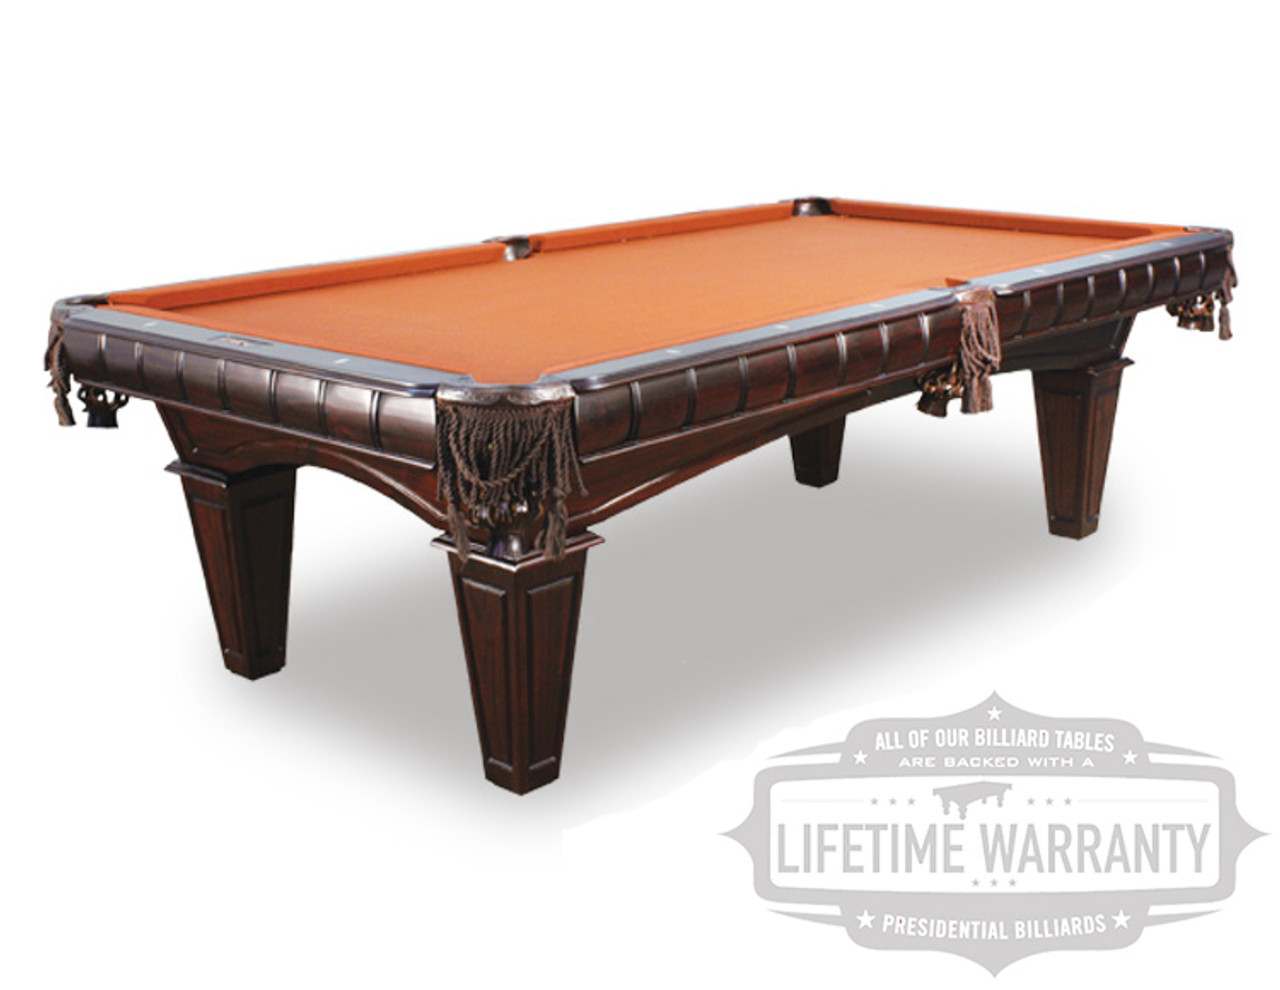 New Pool Tables For Sale, Presidential Billiards Kruger Pool Table, Pool  Table Chicago,